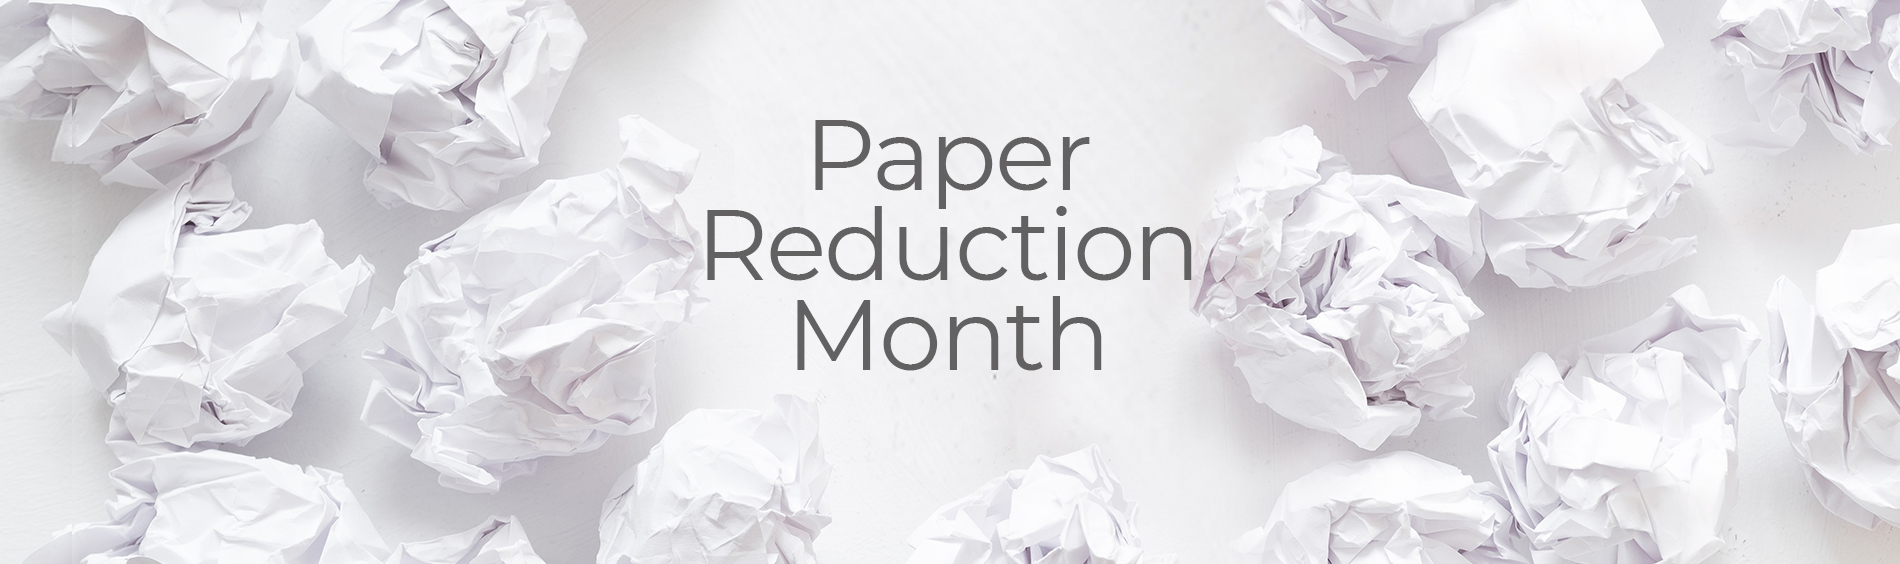 Balls of crumpled white paper and text that states Paper Reduction Month